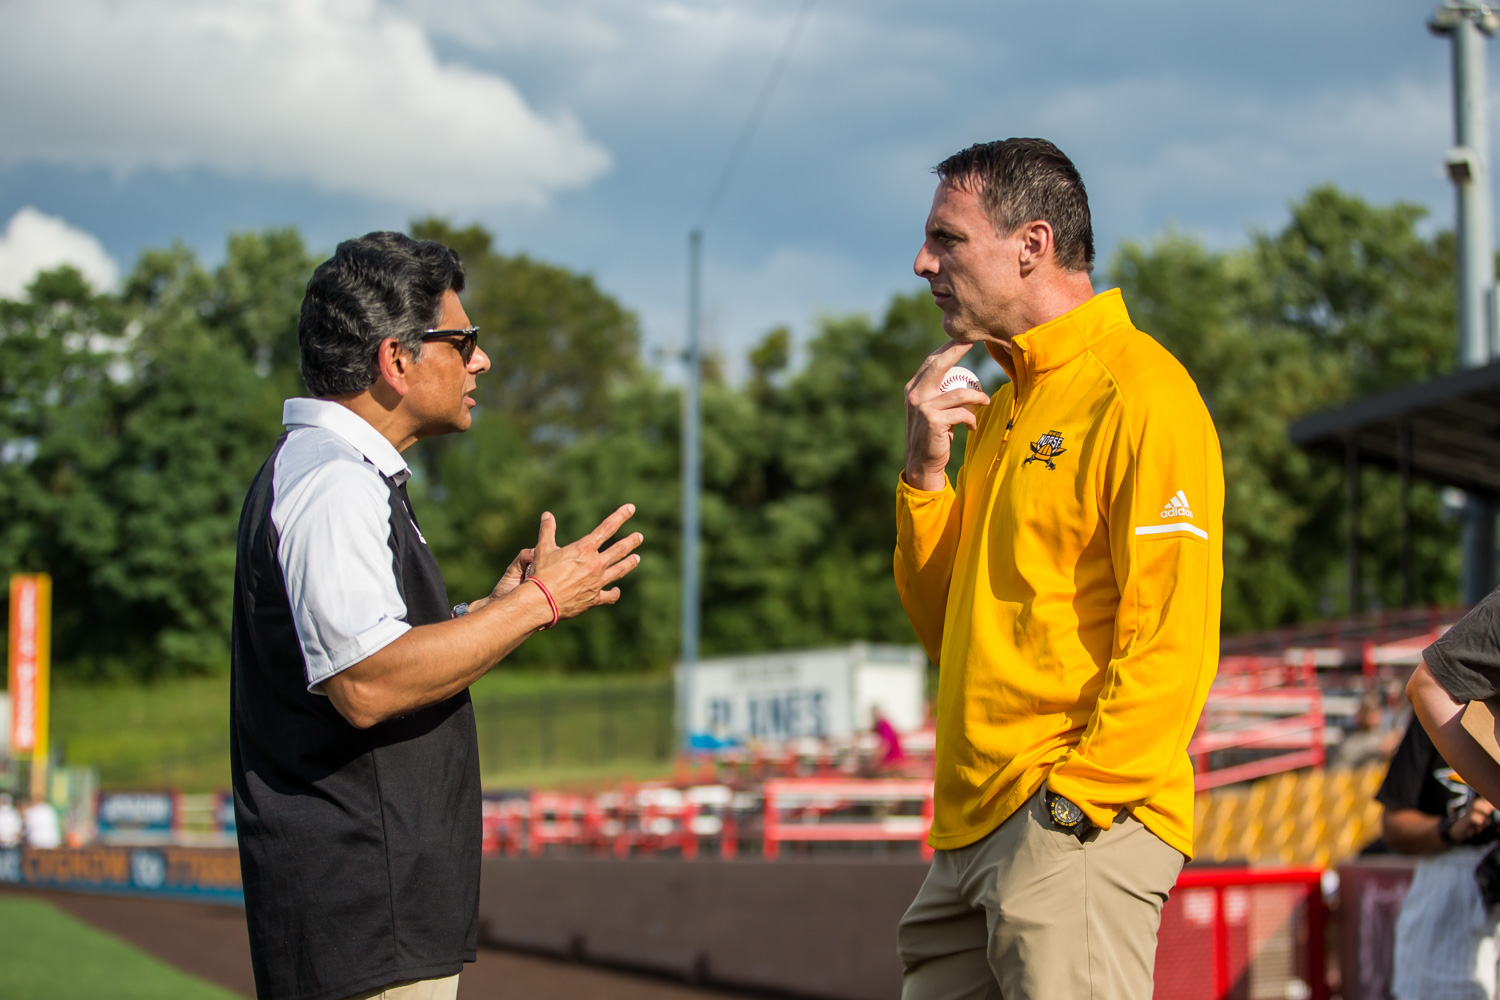 Men%27s+Basketball+Head+Coach+Darrin+Horn+%28right%29+talks+with+NKU+President+Ashish+Vaidya+%28left%29prior+to+the+first+pitch+at+the+Florence+Freedom+Baseball+Game.